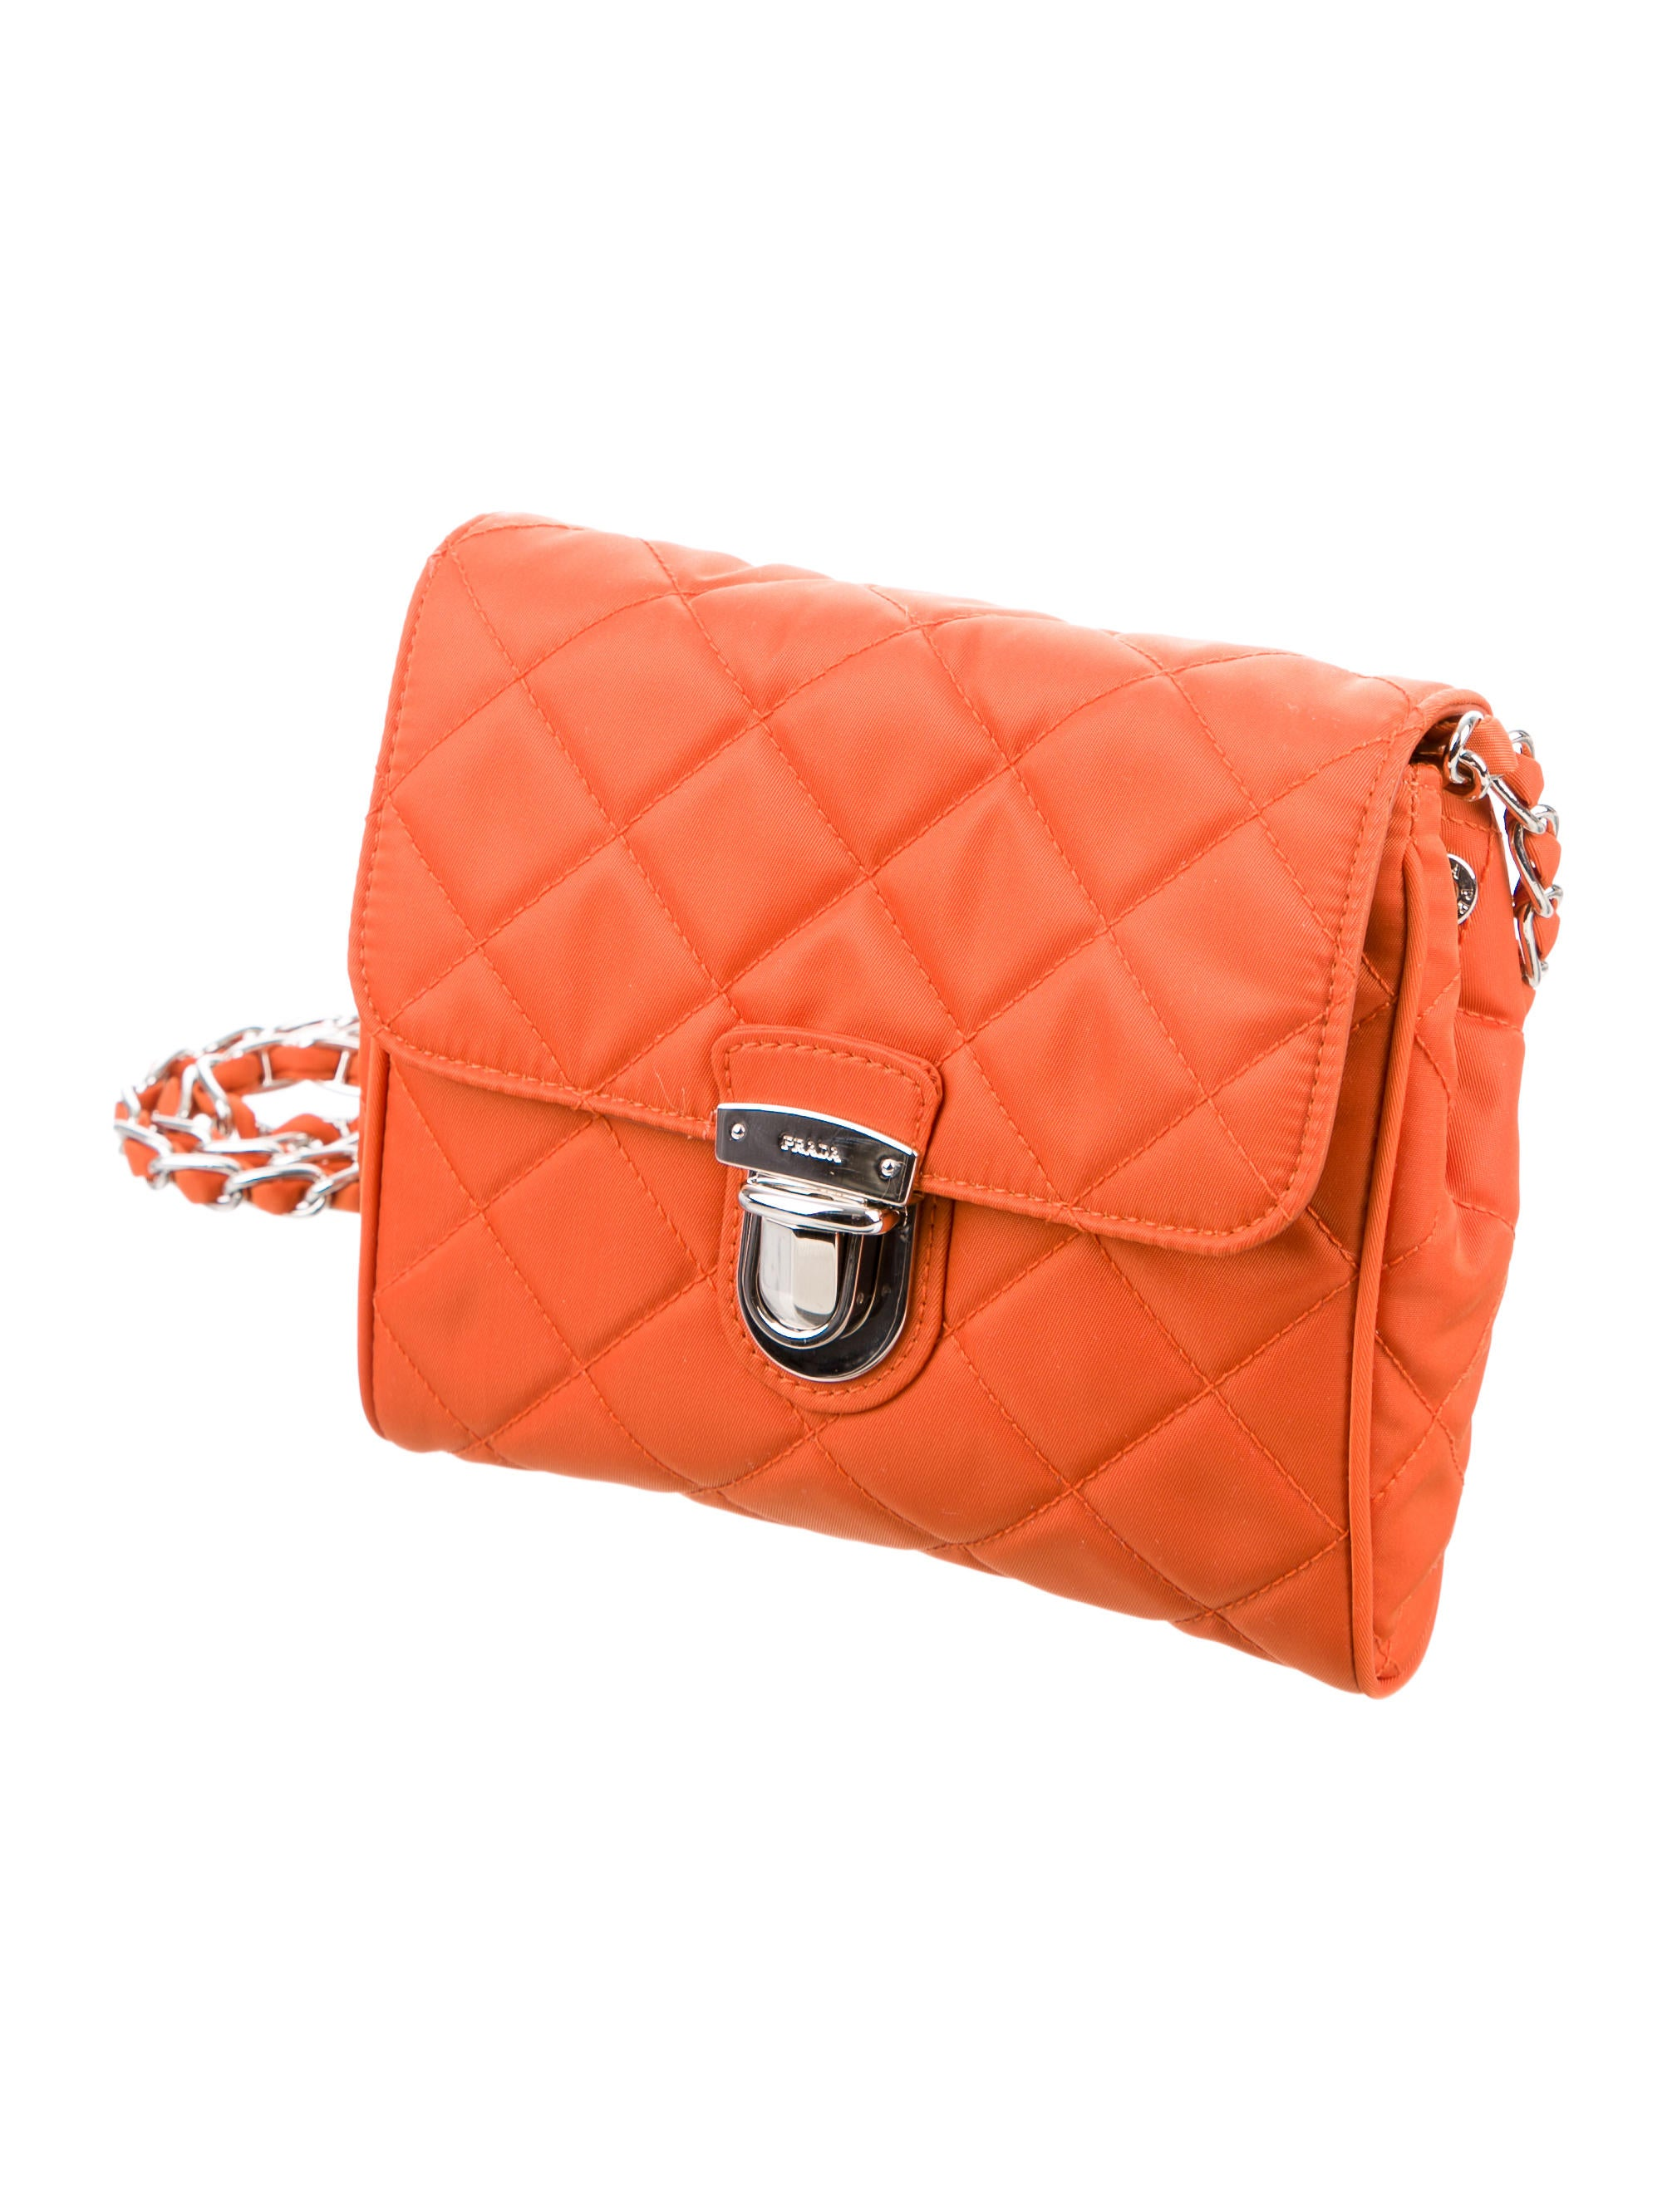 dcf33f8c8a51 Prada Quilted Crossbody Bag | Stanford Center for Opportunity Policy ...